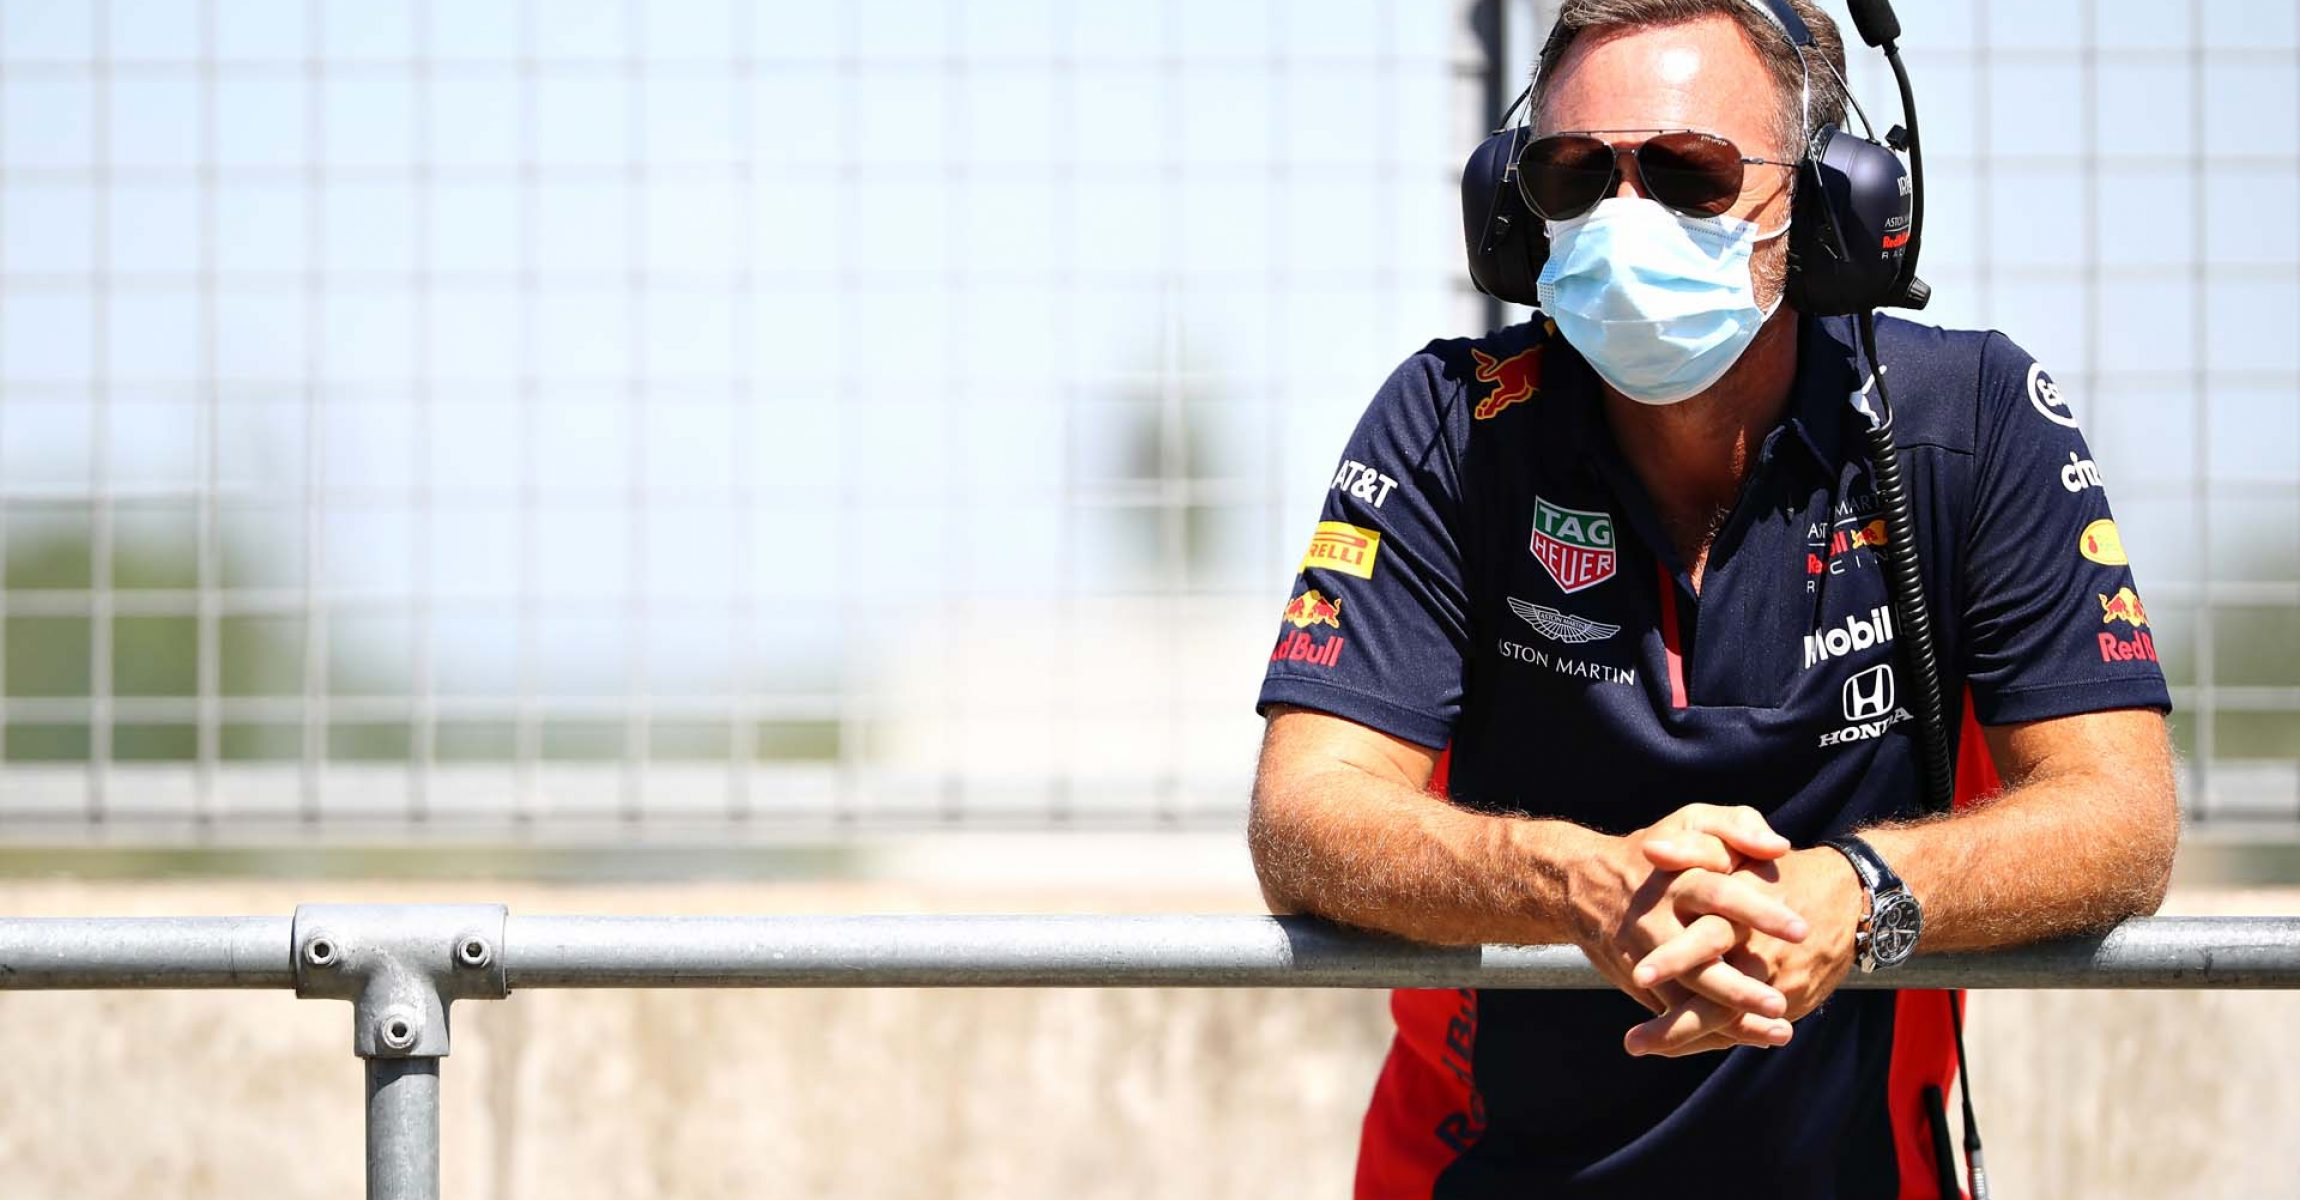 NORTHAMPTON, ENGLAND - JUNE 25: Red Bull Racing Team Principal Christian Horner looks on in the Pitlane during the Red Bull Racing RB16 Filming Day at Silverstone Circuit on June 25, 2020 in Northampton, England. (Photo by Mark Thompson/Getty Images) // Getty Images / Red Bull Content Pool // AP-24EED7EFH1W11 // Usage for editorial use only //